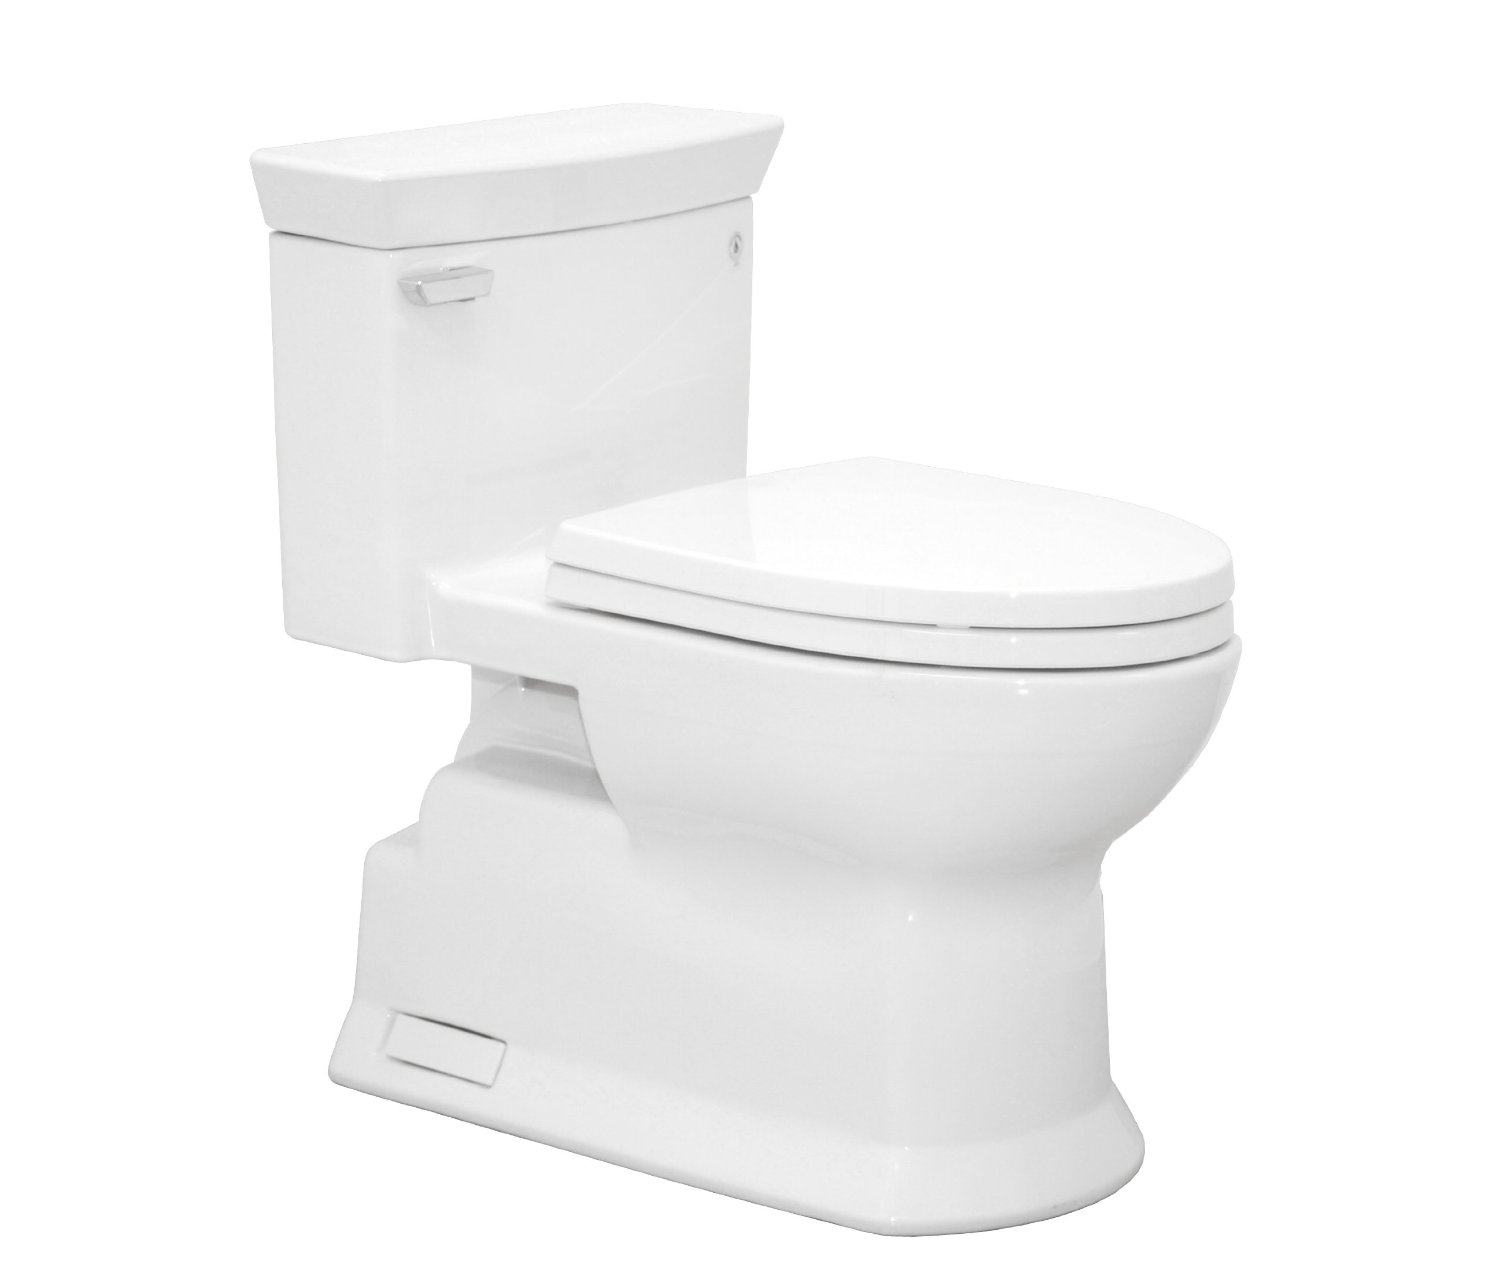 Best TOTO Toilet Reviews: Editors' Pick Of The Year 2019 - Shop Toilet